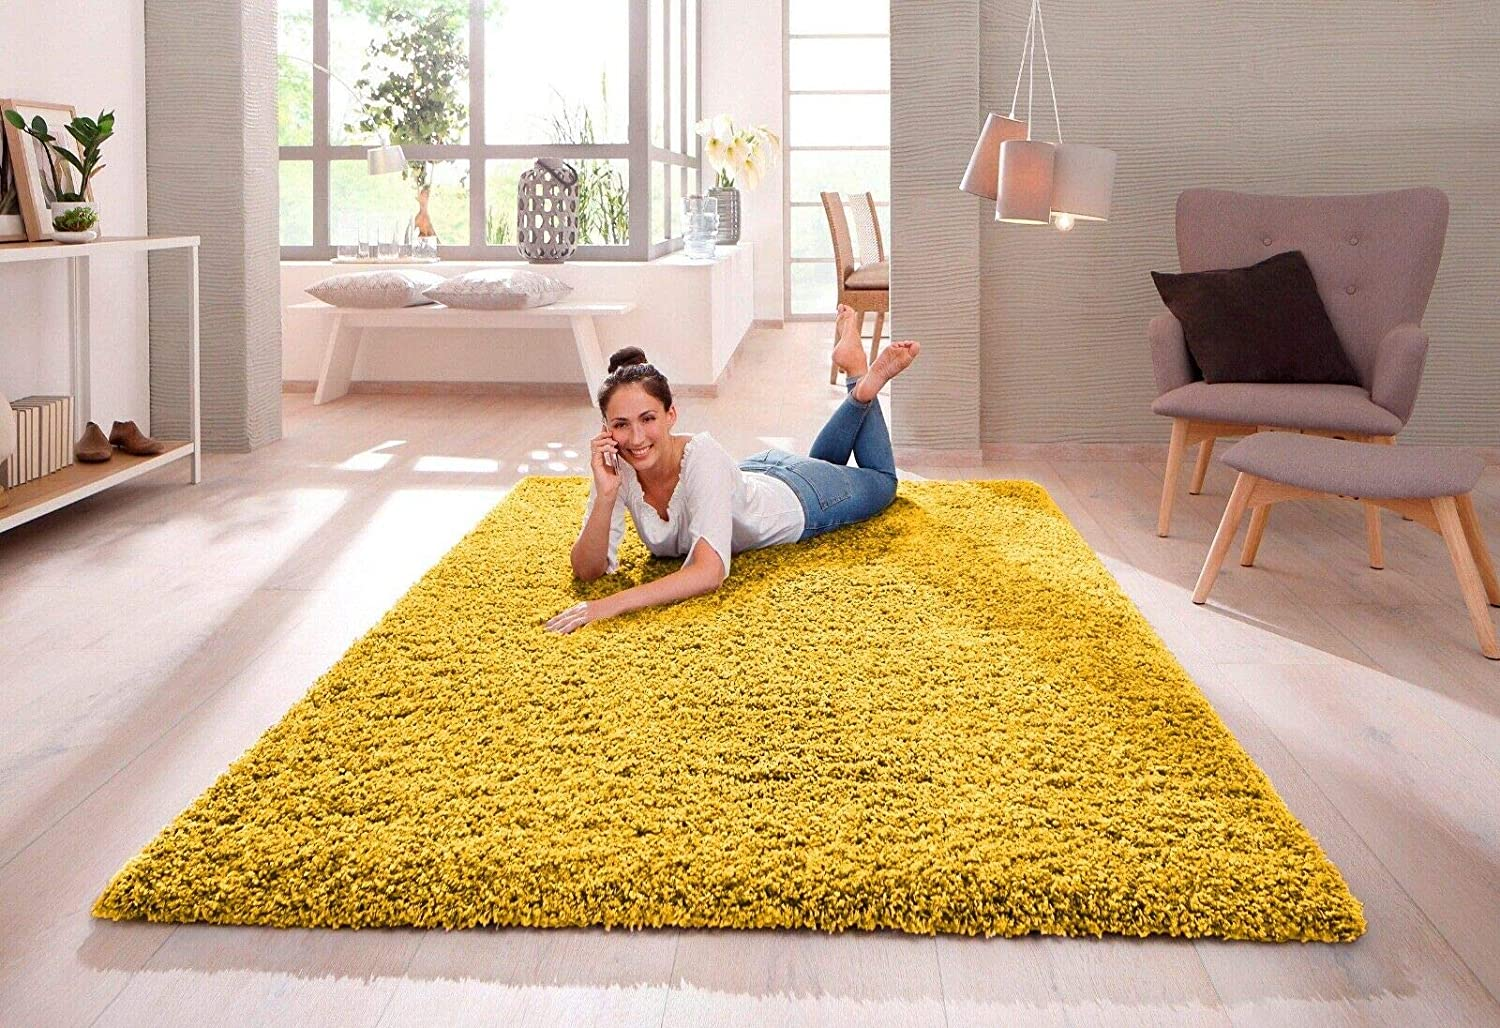 Shaggy Rug 30mm 3cm Modern Rugs Living Room Extra Large Small Medium Rectangular Size Soft Touch Thick Pile Living Room Area Rugs Non Shedding Ochre Yellow 120cm X 170cm 4ft X